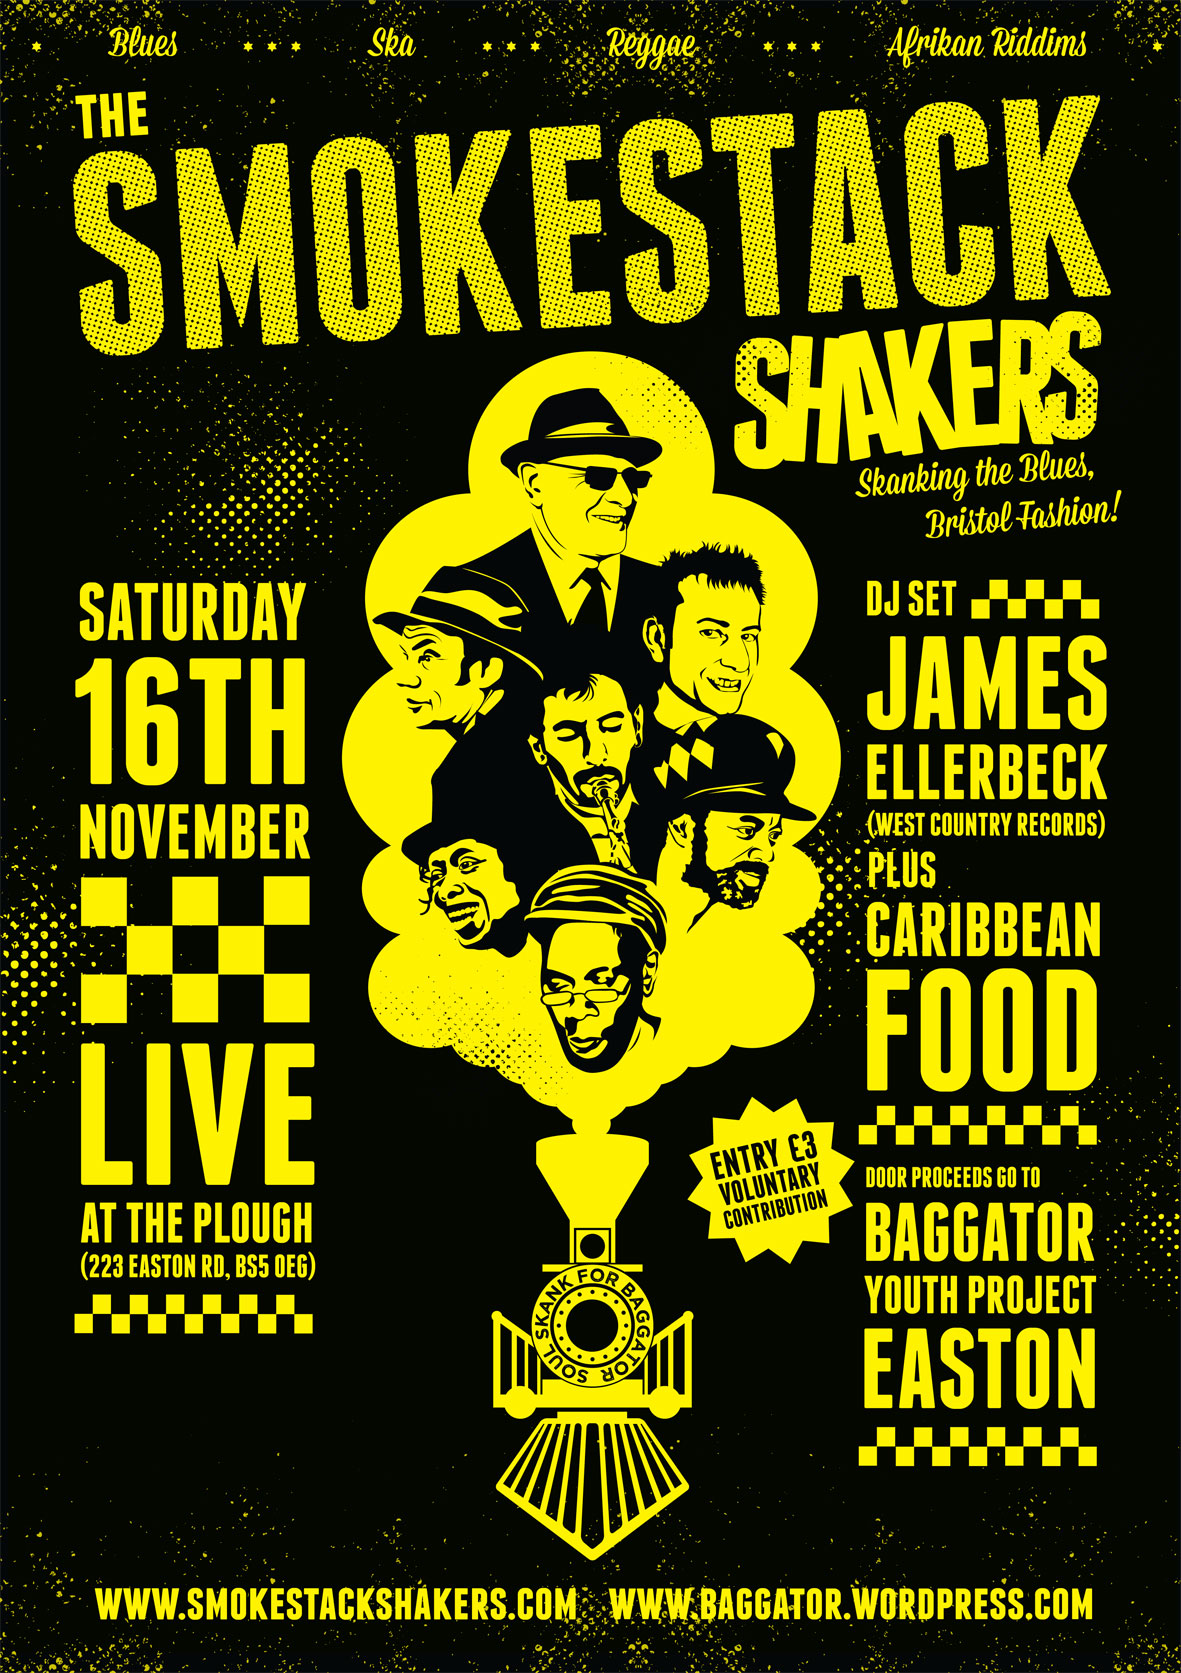 Party time with the Smokestack Shakers at the Plough!